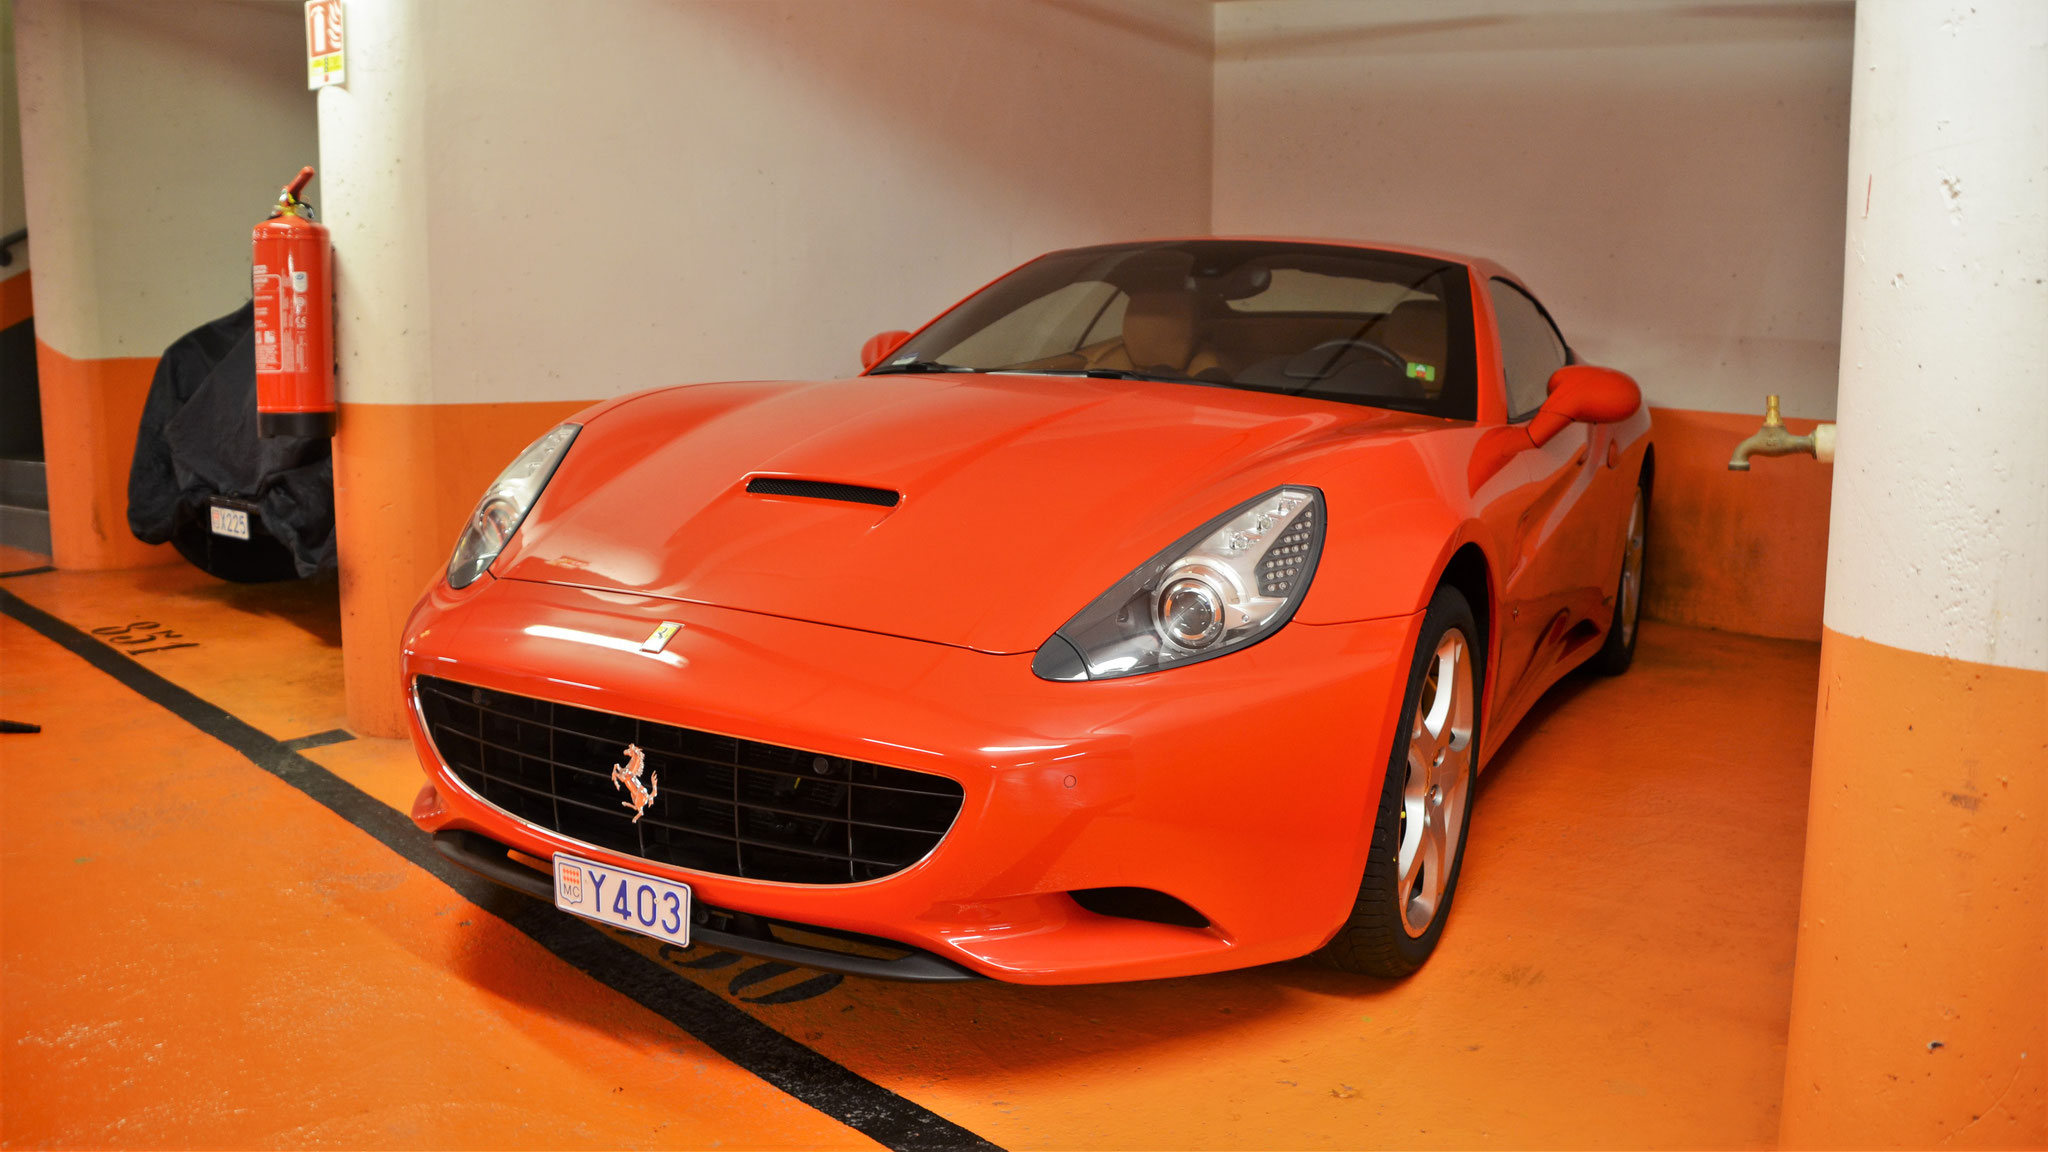 Ferrari California - Y403 (MC)